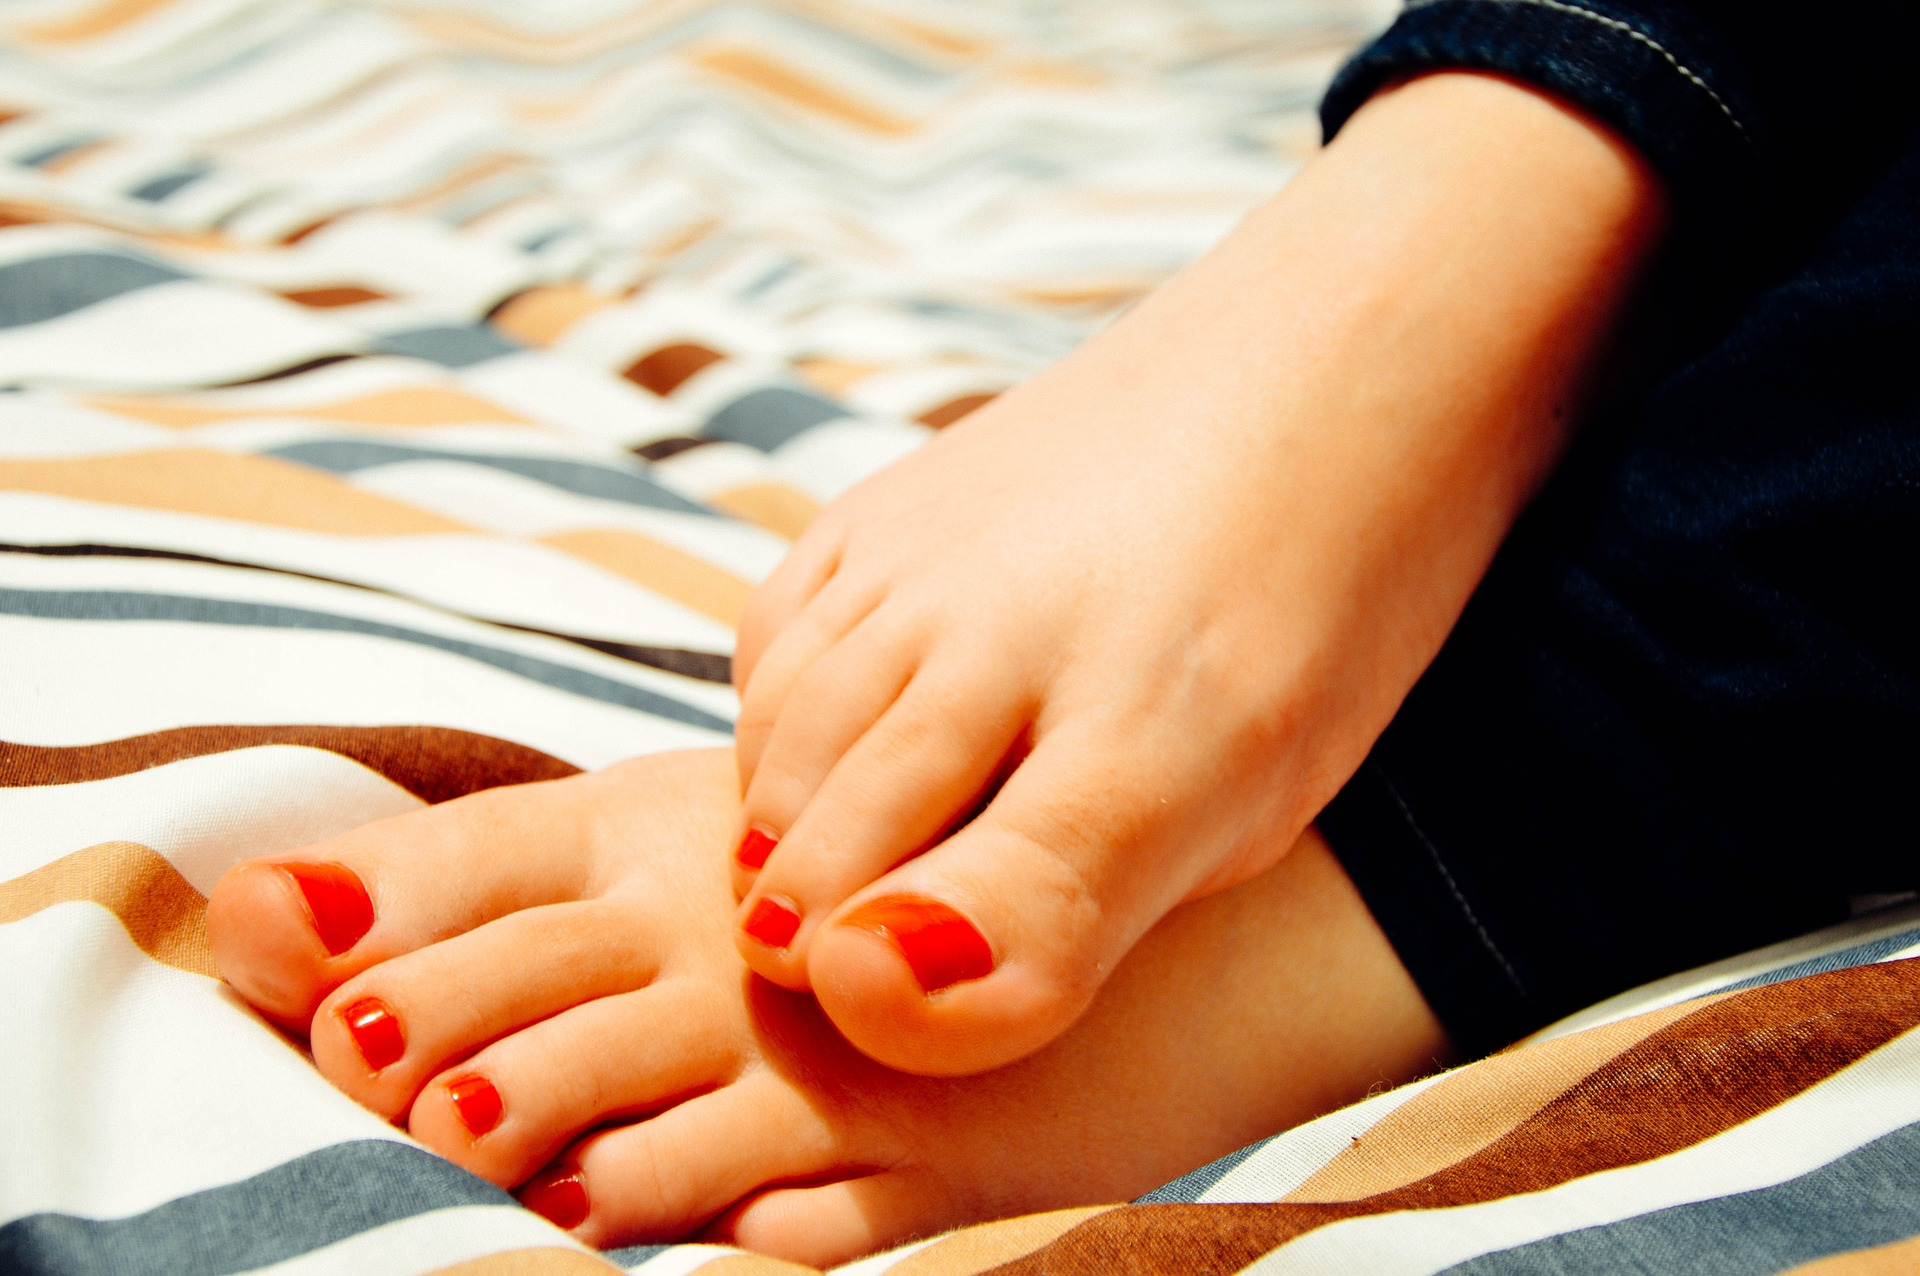 Woman's feet with polished toes